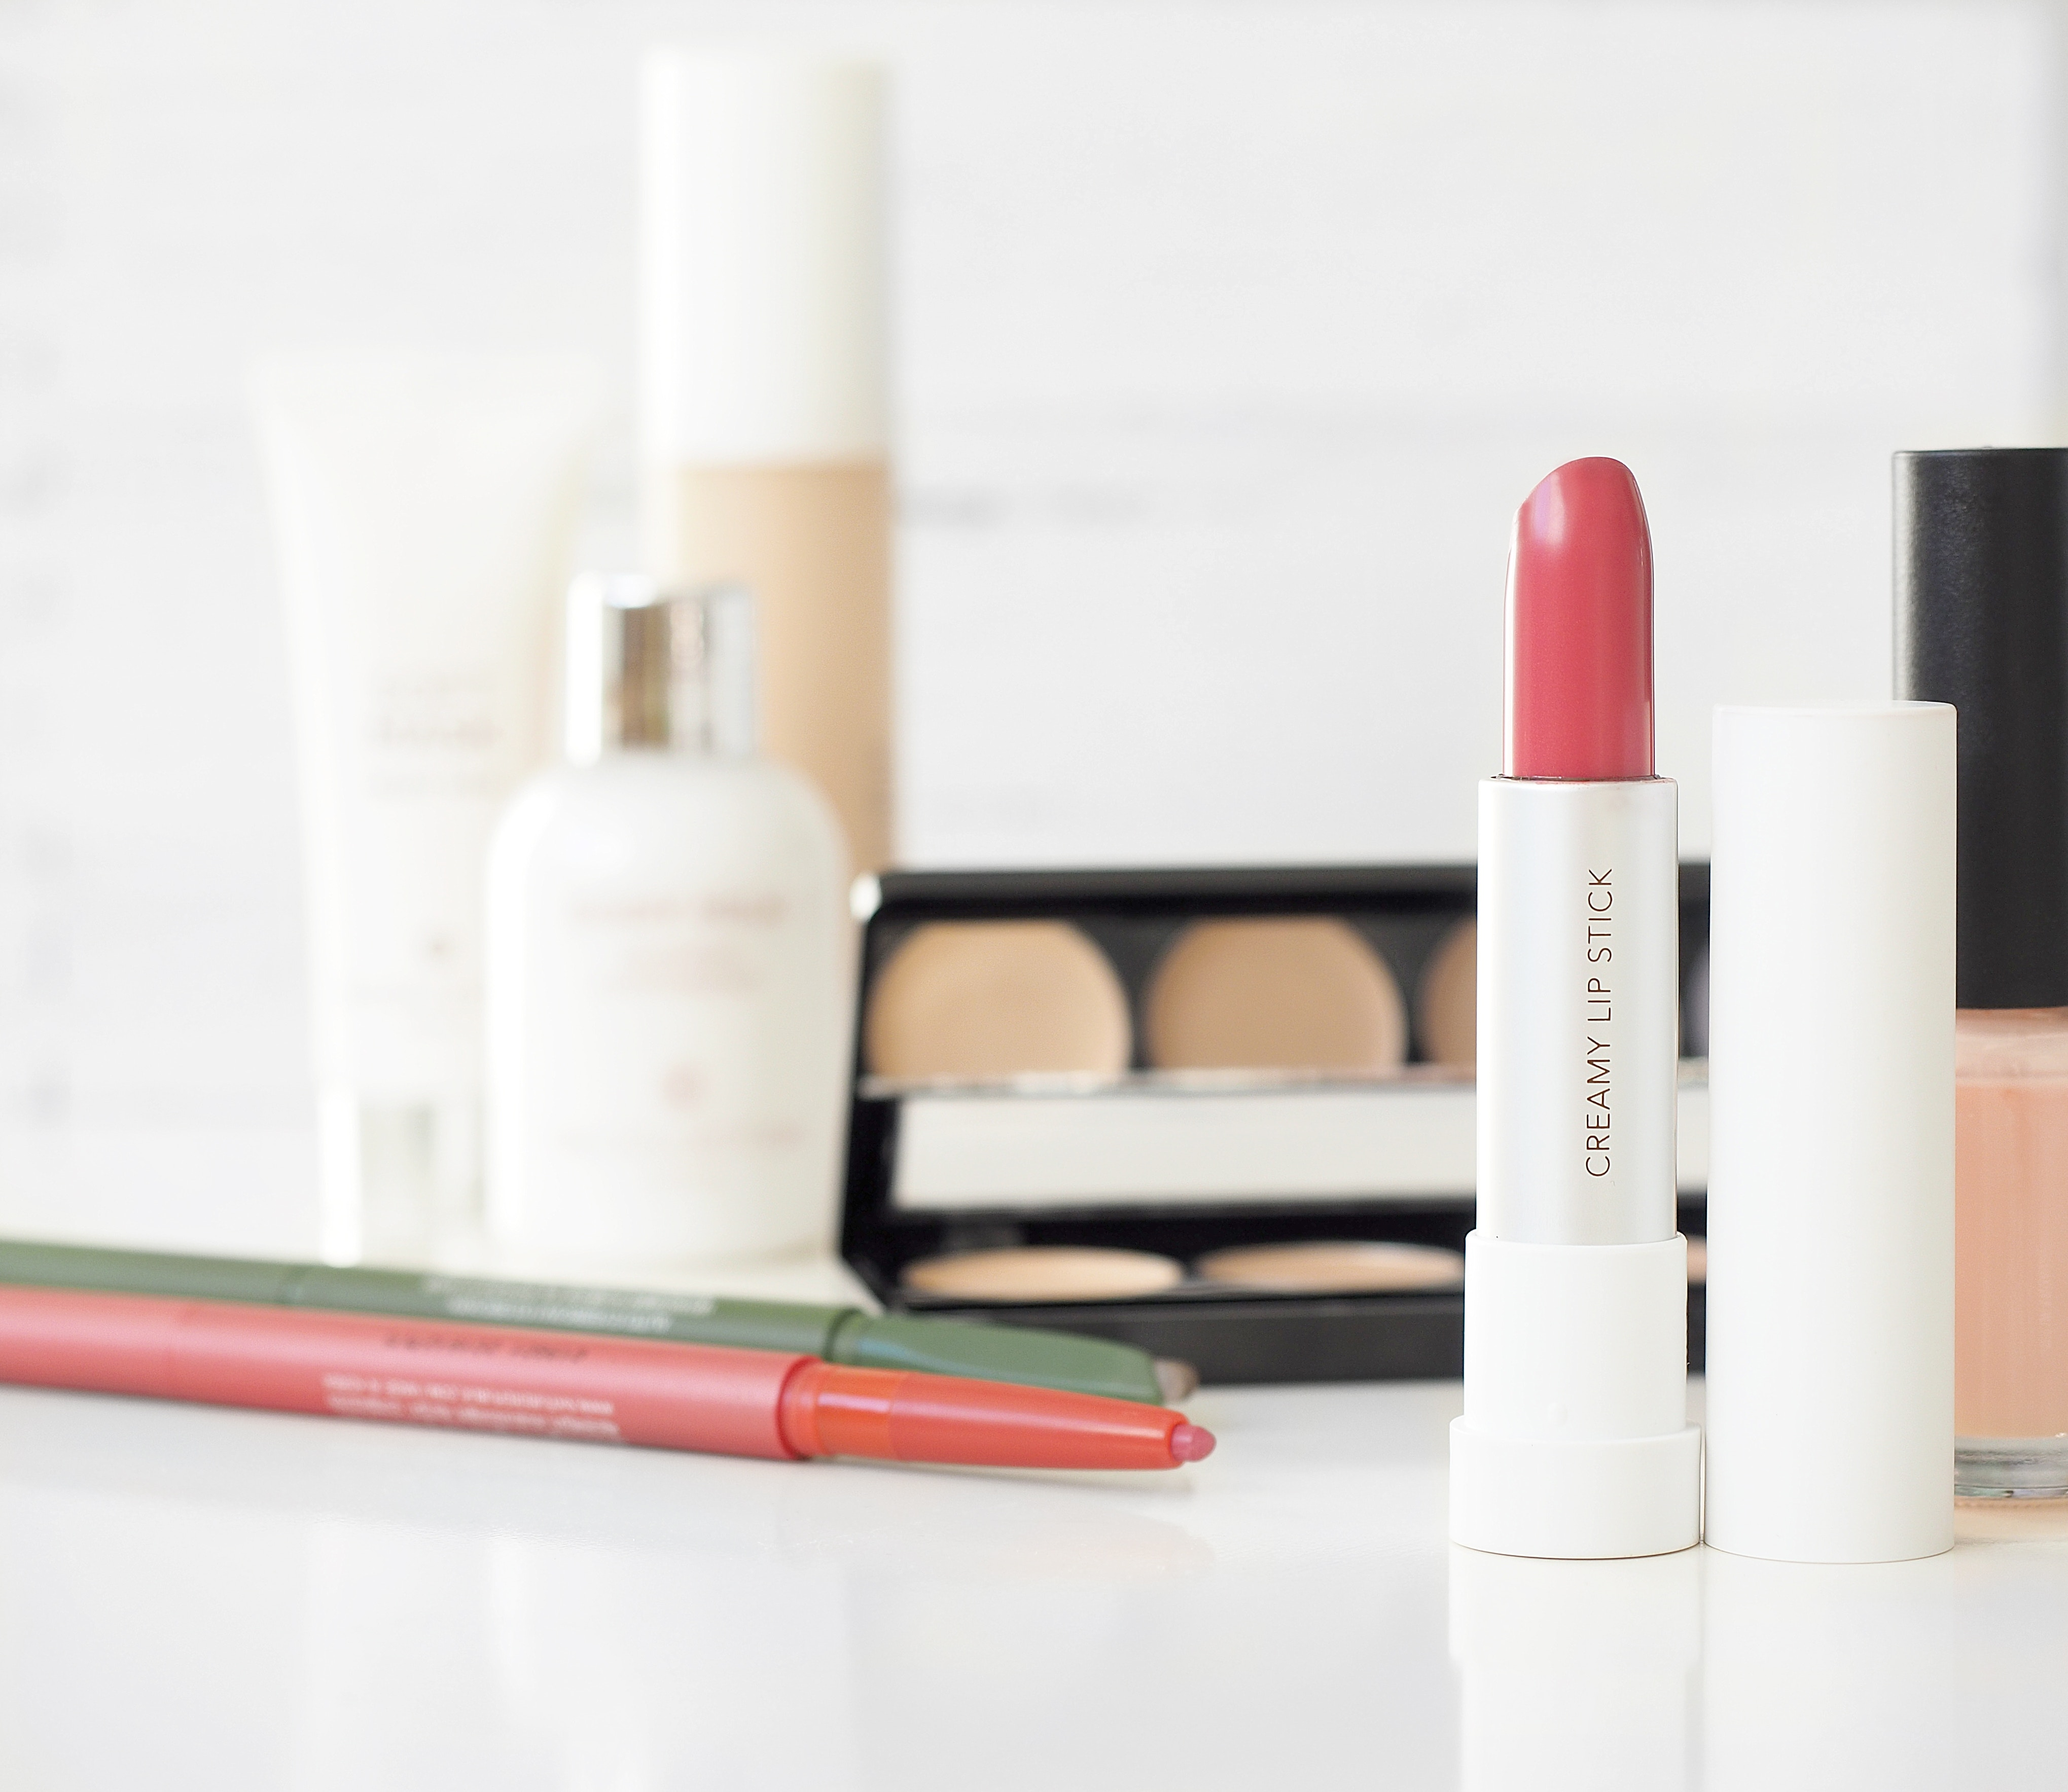 What if you could Save Money on your Makeup? Awesome, right? Well, you can start saving money plus cash back when you buy your makeup as I do. Click here to know the trick I use to save money on makeup. Click for all the details! #savingmoney #savemoney #frugalliving